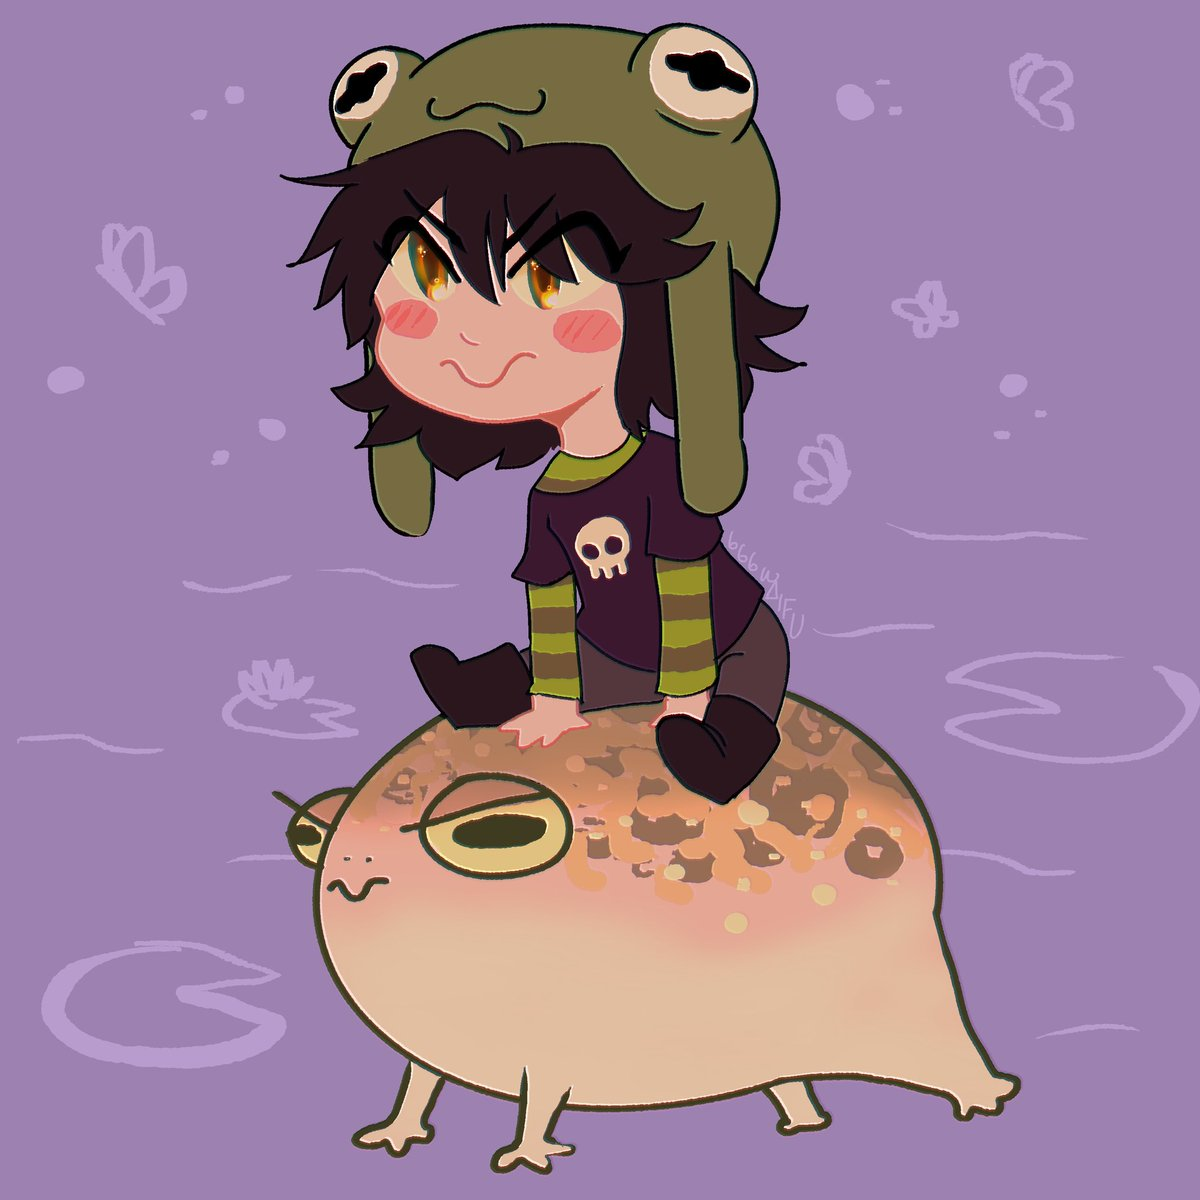 finished this adorable commission for a friend!! #frog #frogart #chibi #chibiart #kawaii #commission #art #digitalart #artist #froggy